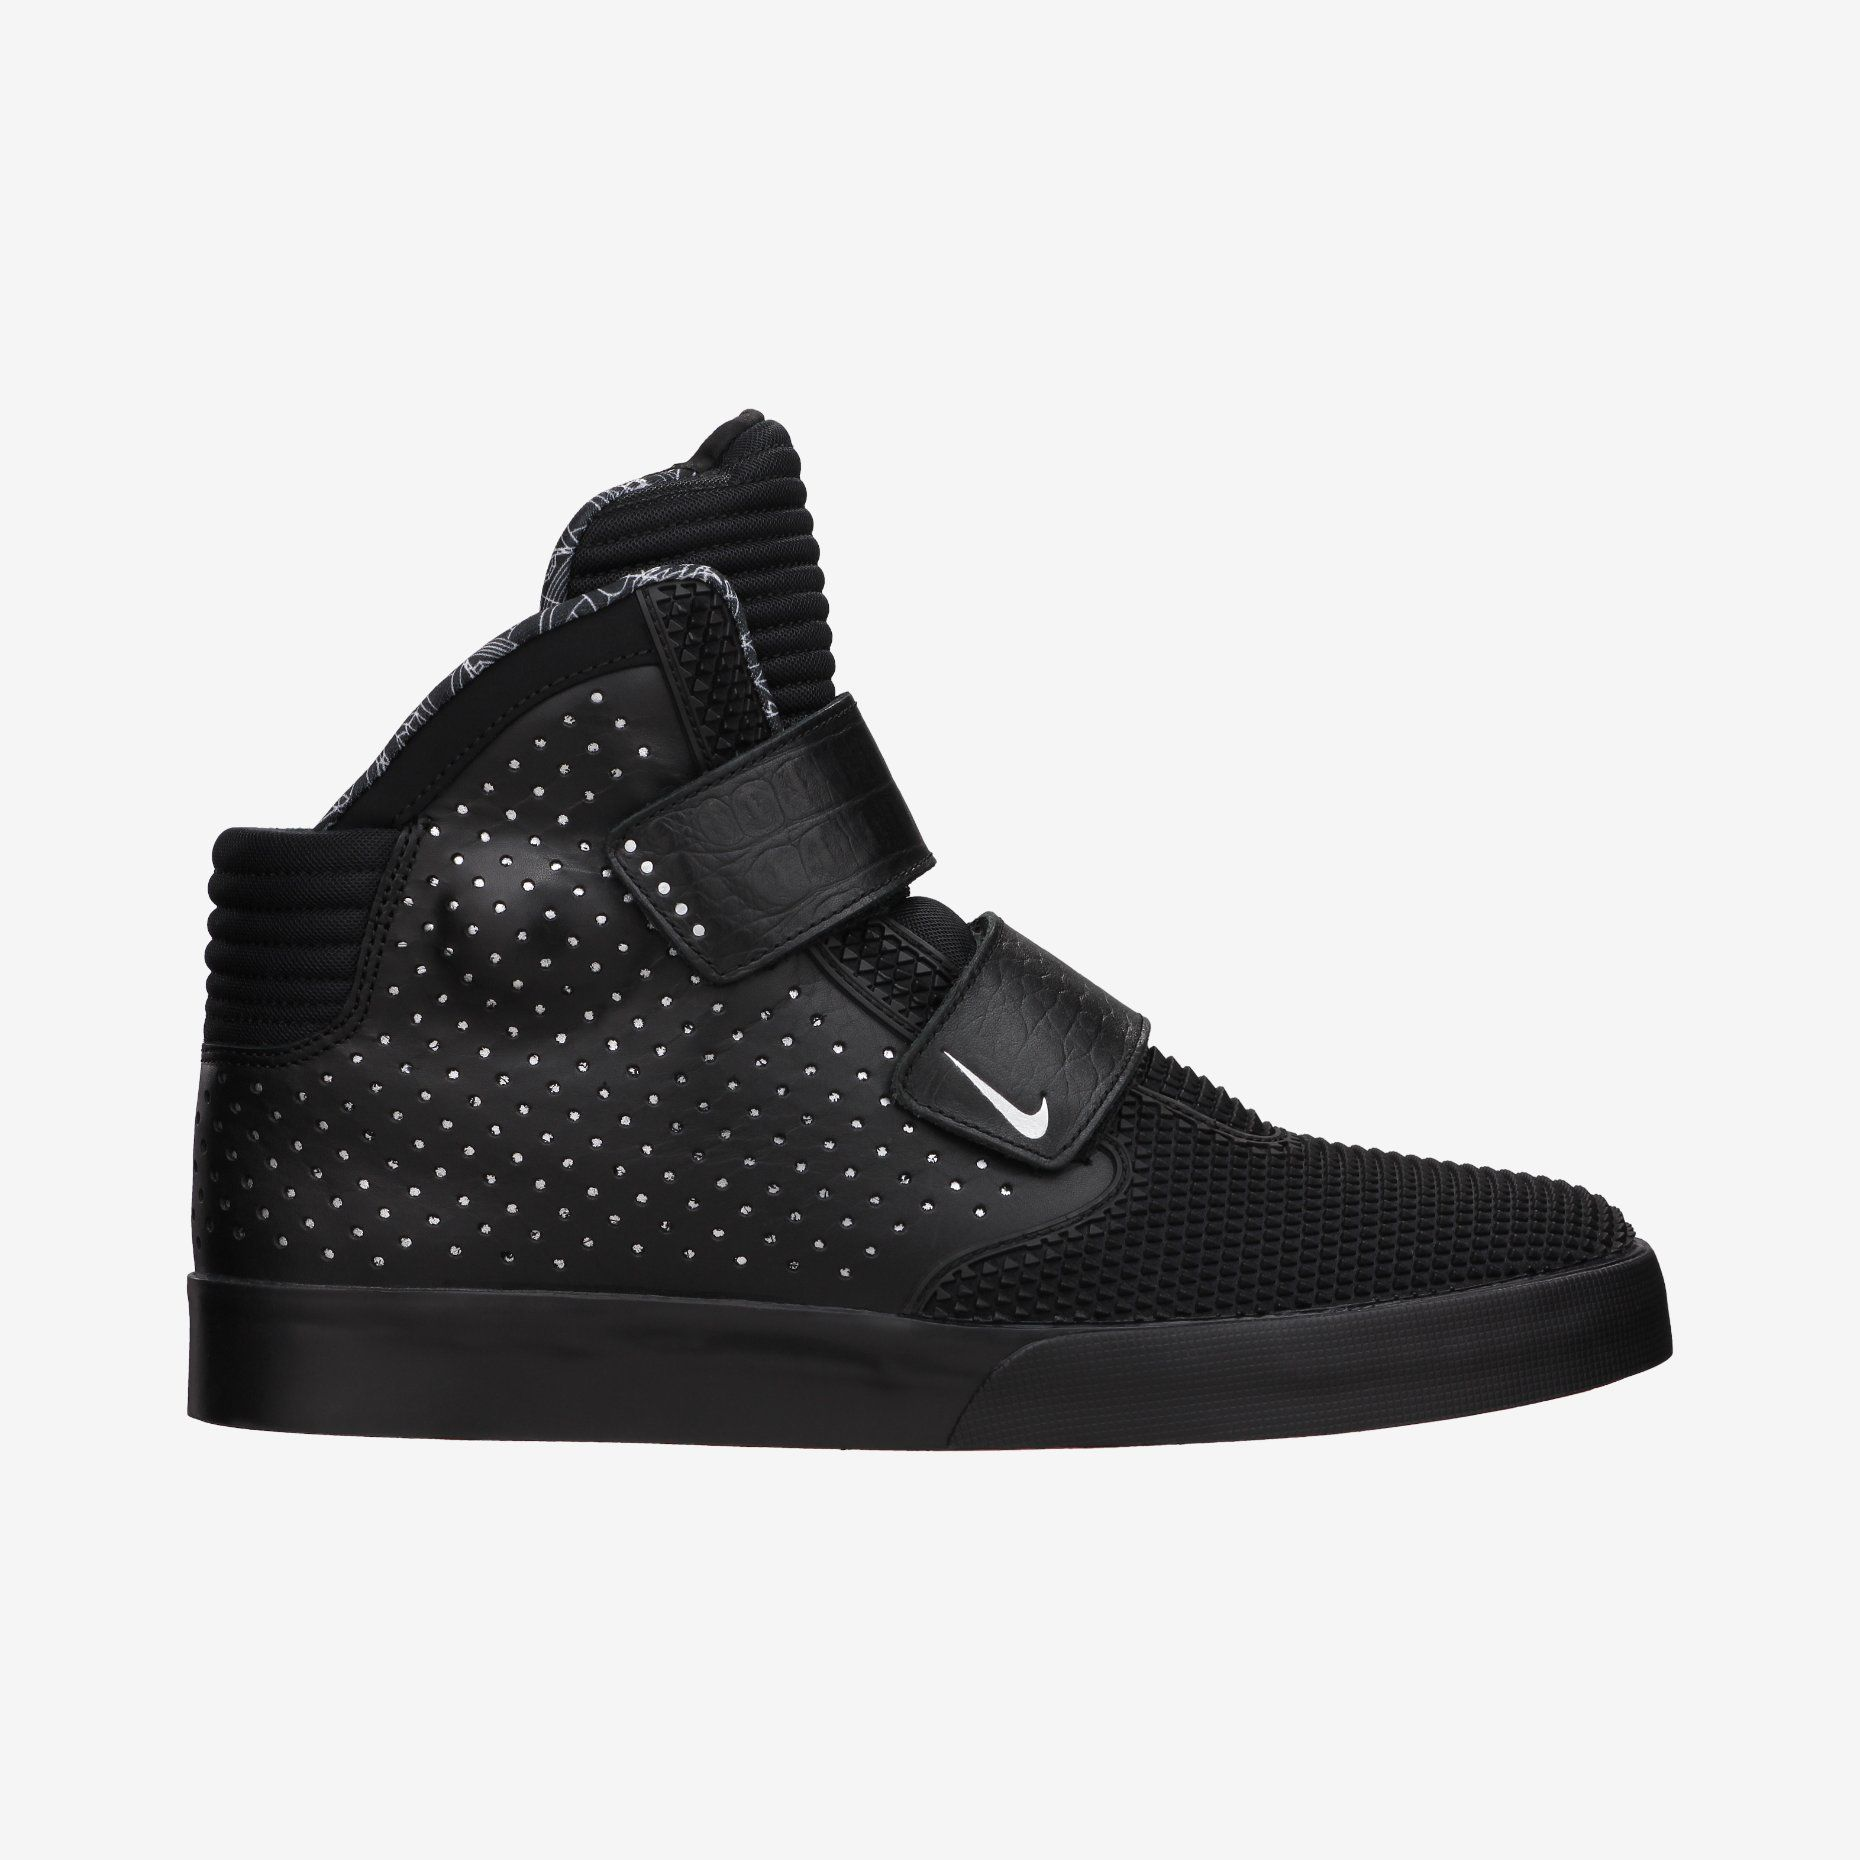 quality design 07f61 48a82 ... Nike Flystepper 2K3 Premium Men s Shoe. ...